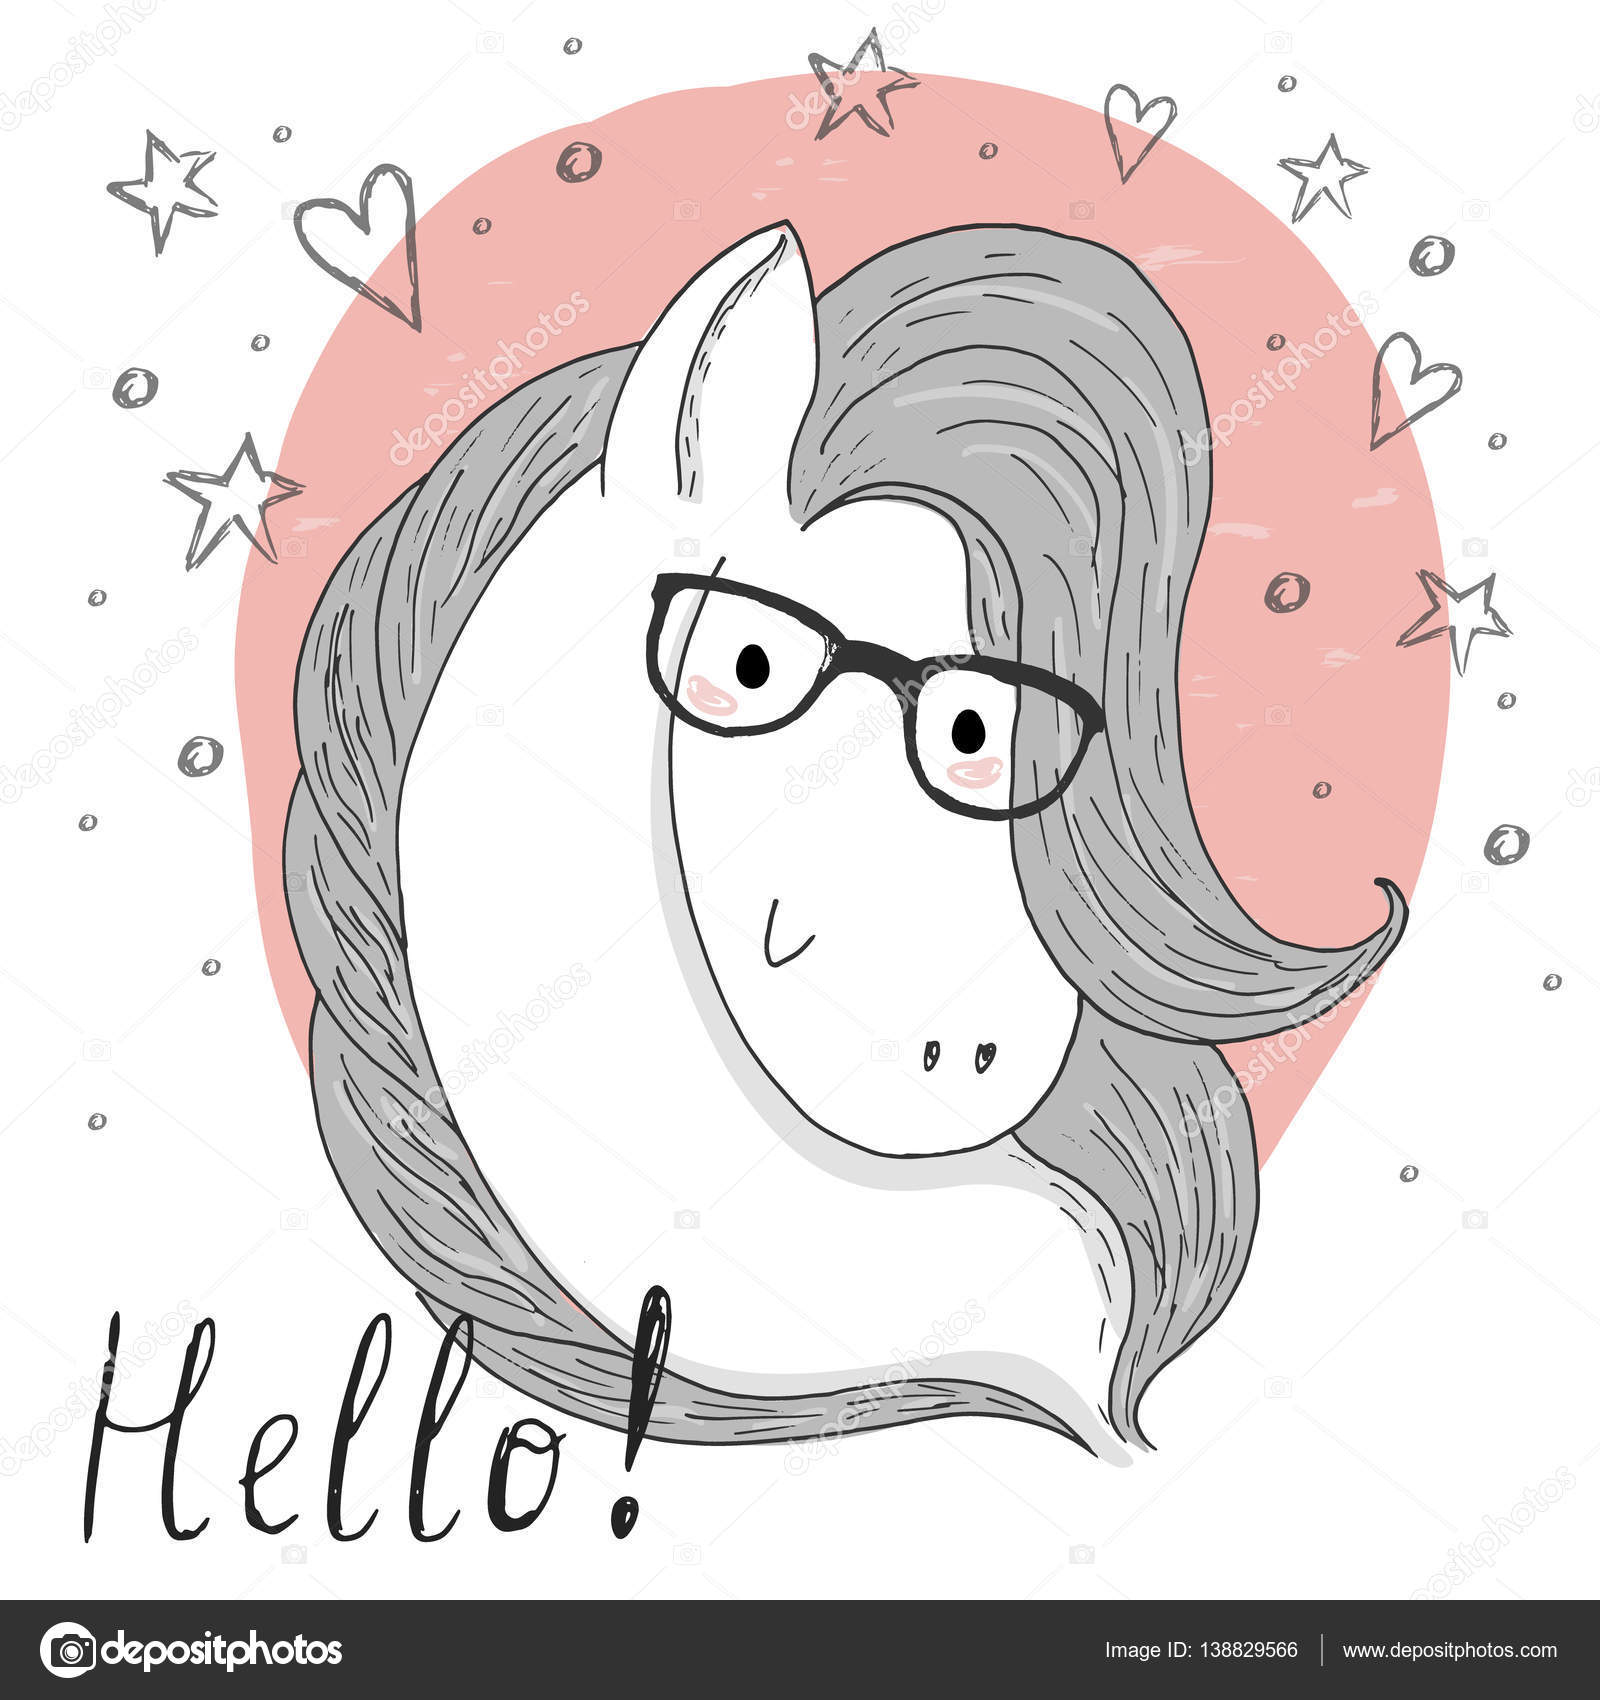 Cute Horse And Glasses Sketch Doodle Vector Illustration Stock Vector C I Boiko08 Gmail Com 138829566